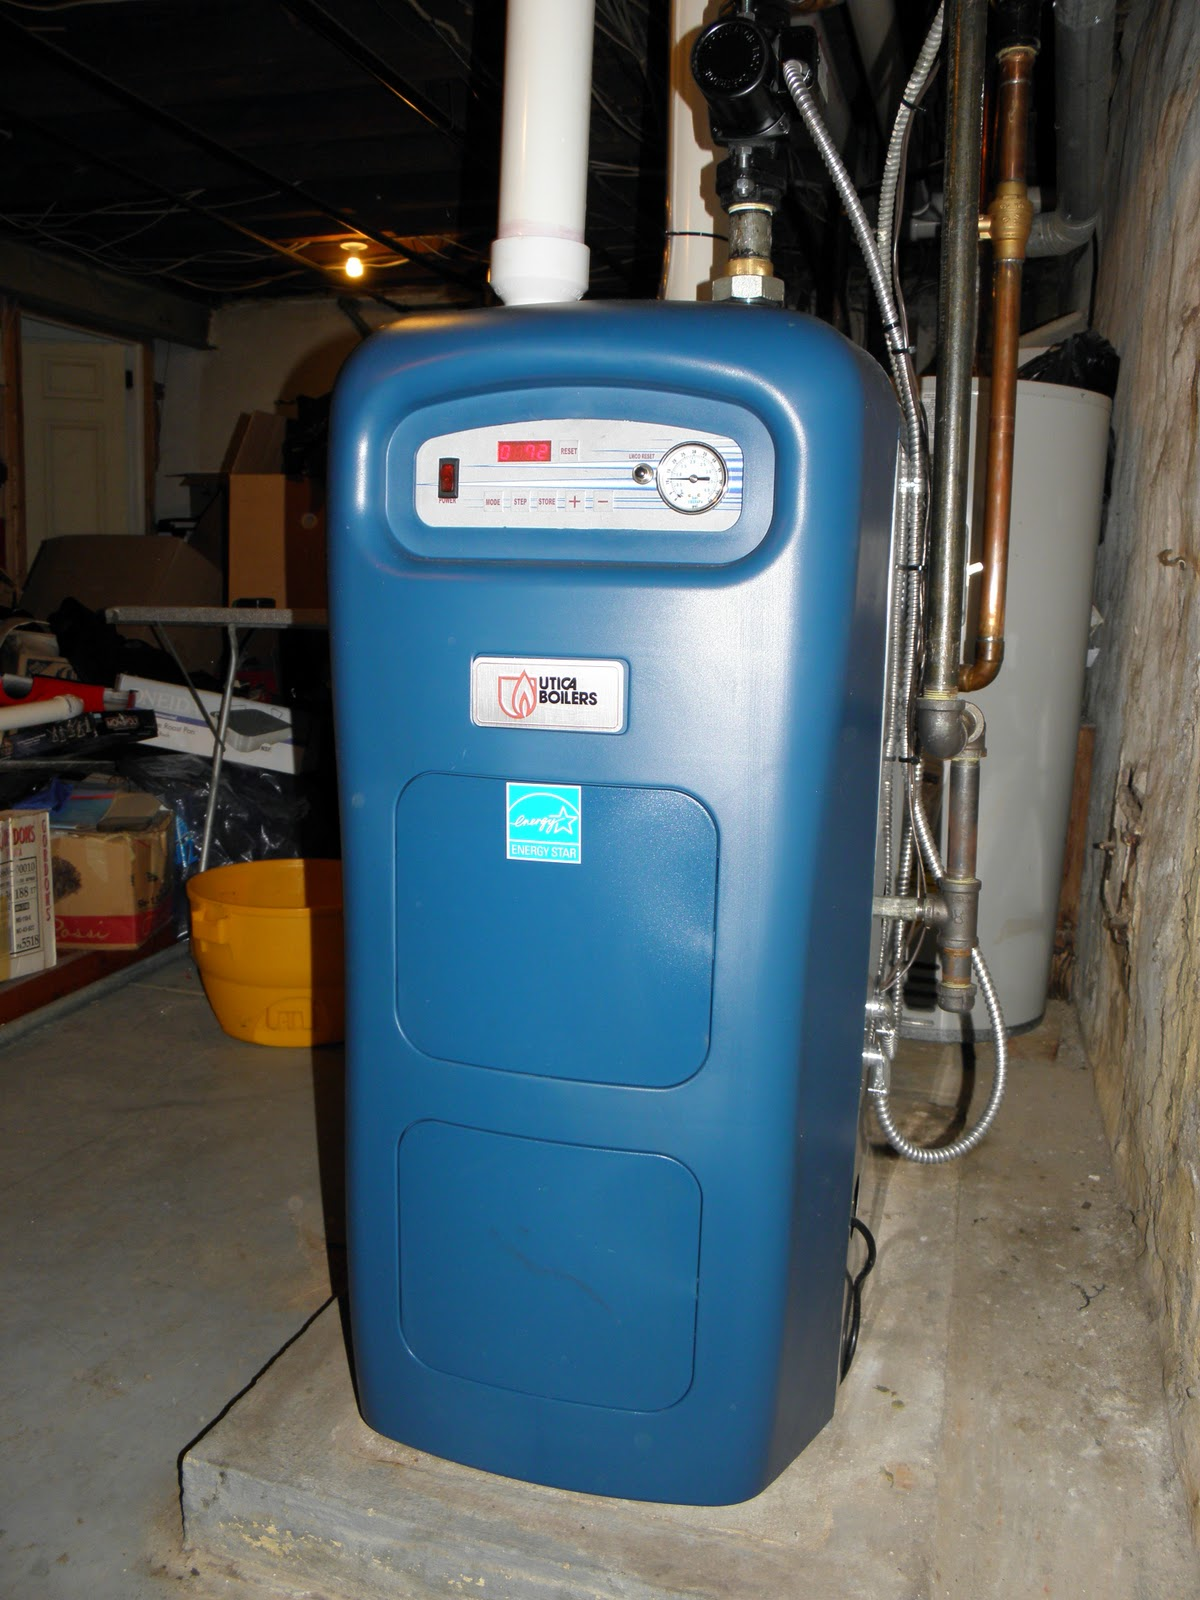 Peter G. Sheetz Heating & Air Conditioning610-789-5679: Pictures